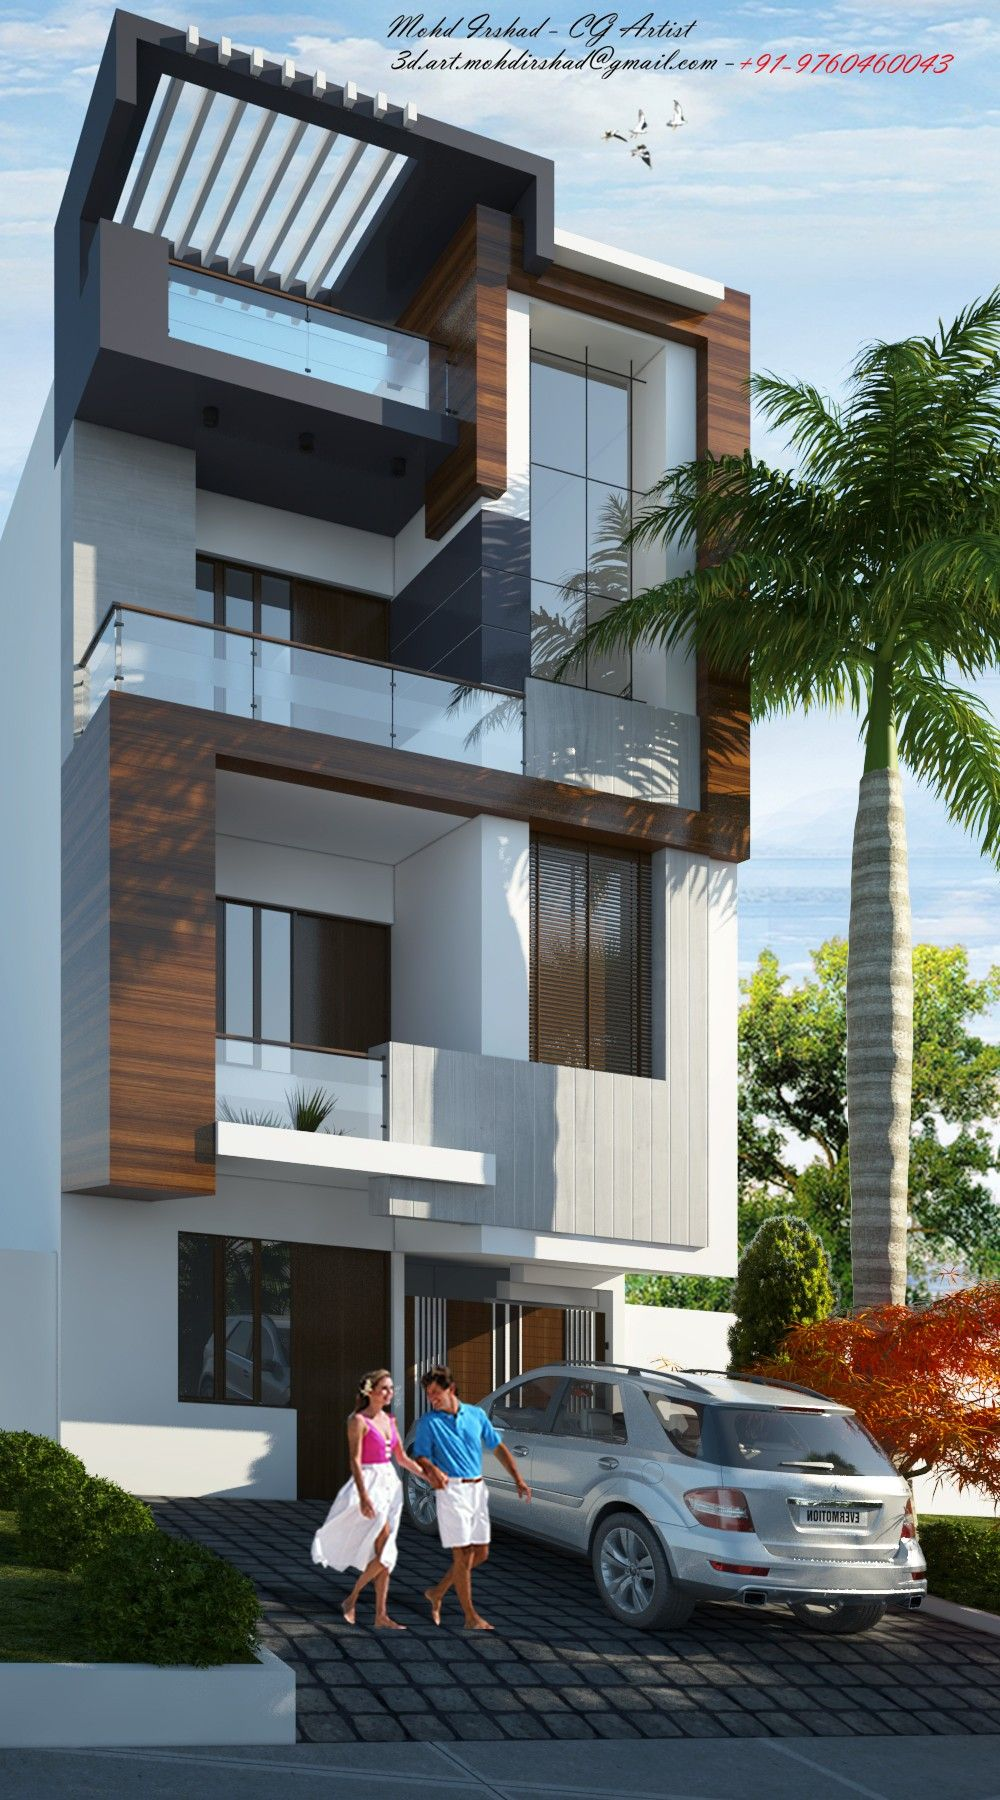 Pin by Architecture Art on 3D home designs   3 storey